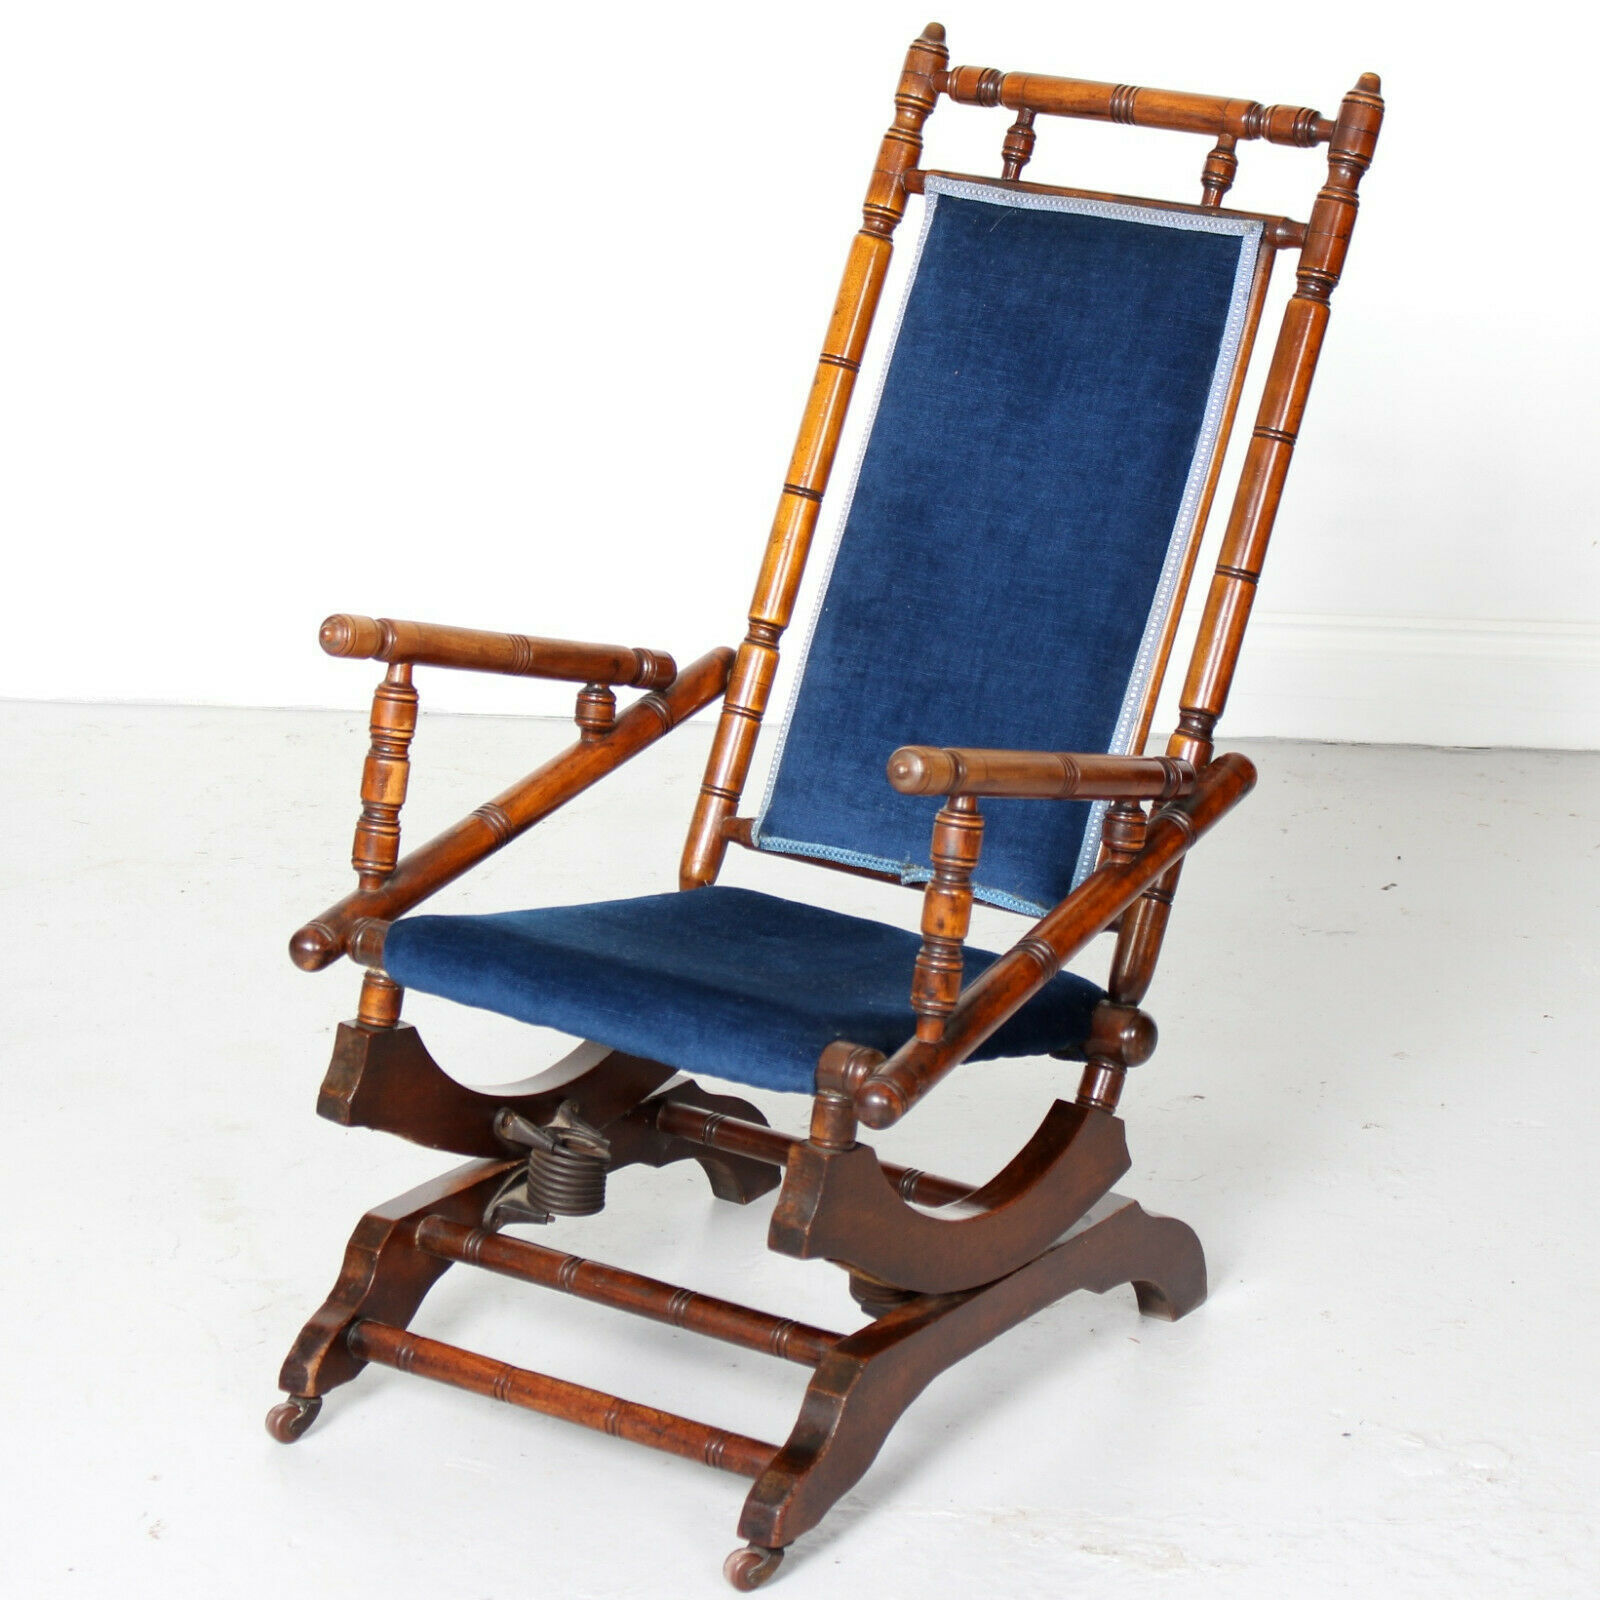 Pleasant Antique Rocking Chair 19Th Century American Influence Victoria Beatyapartments Chair Design Images Beatyapartmentscom